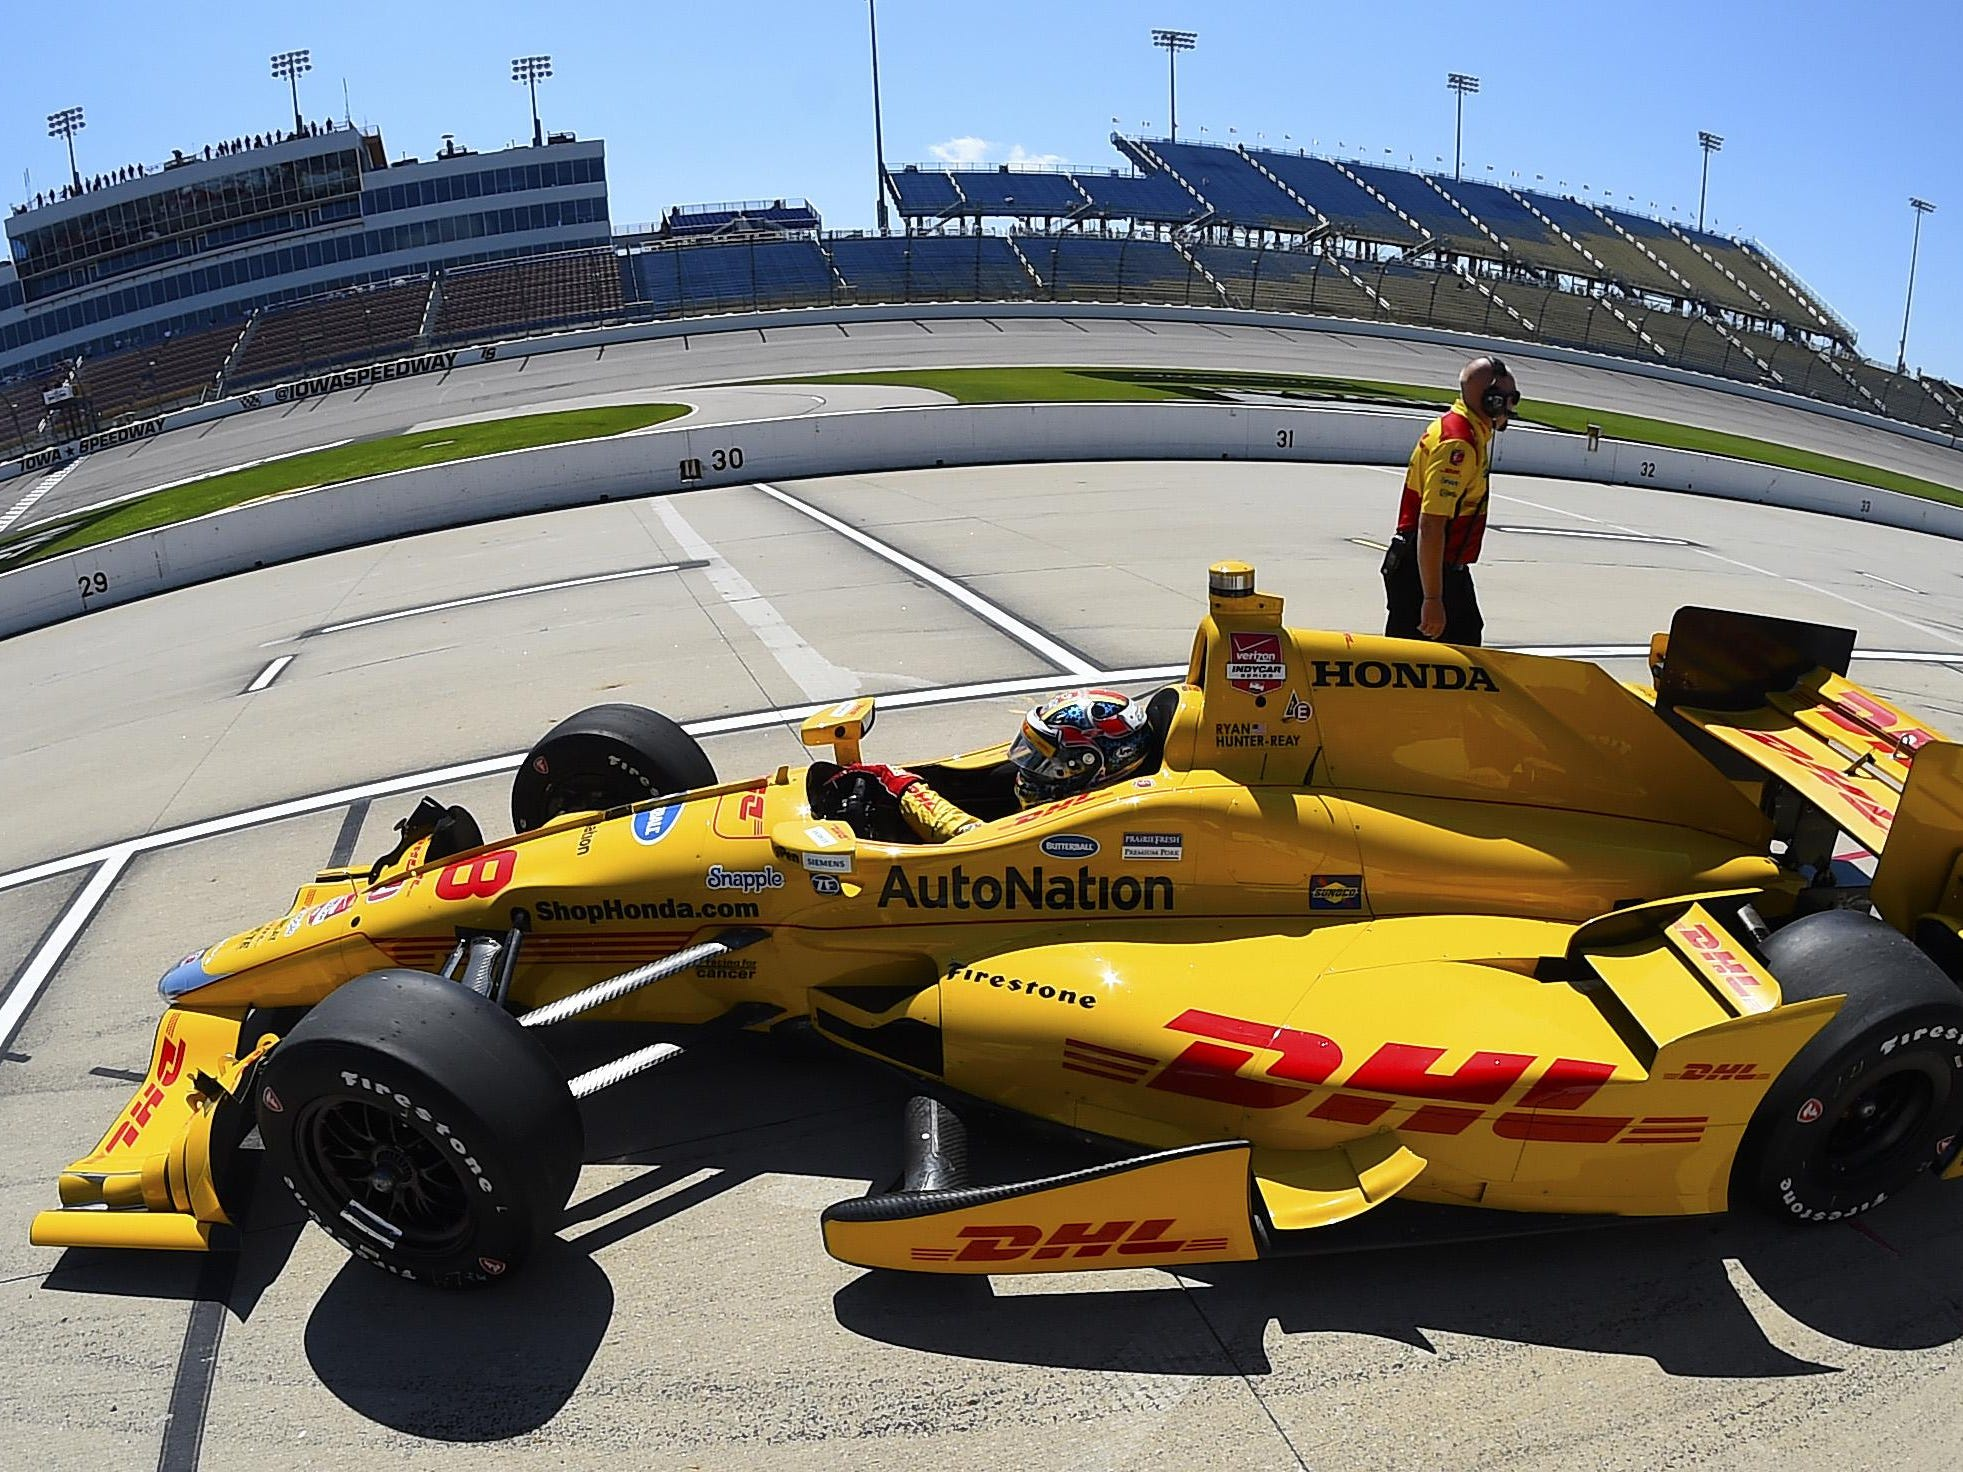 Ryan Hunter-Reay had the fastest Honda in practice on Friday at 178.379 mph, but that was 12th-fastest overall. Only one Chevrolet ran slower: rookie Stefano Coletti (177.916).